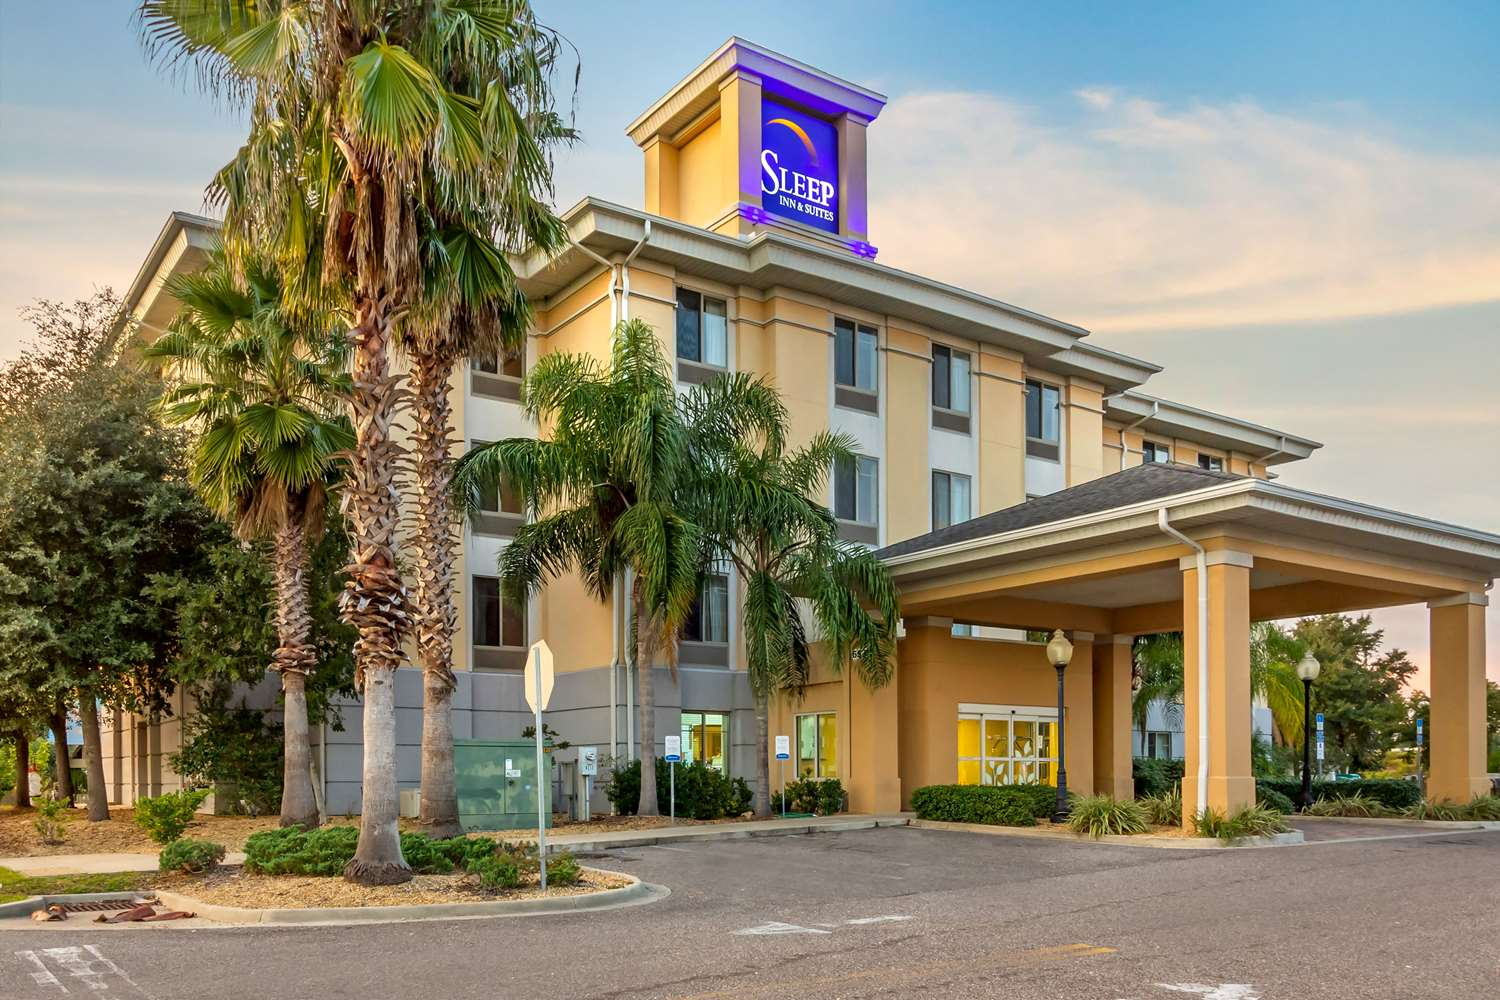 Sleep Inn Inn & Suites Jacksonville